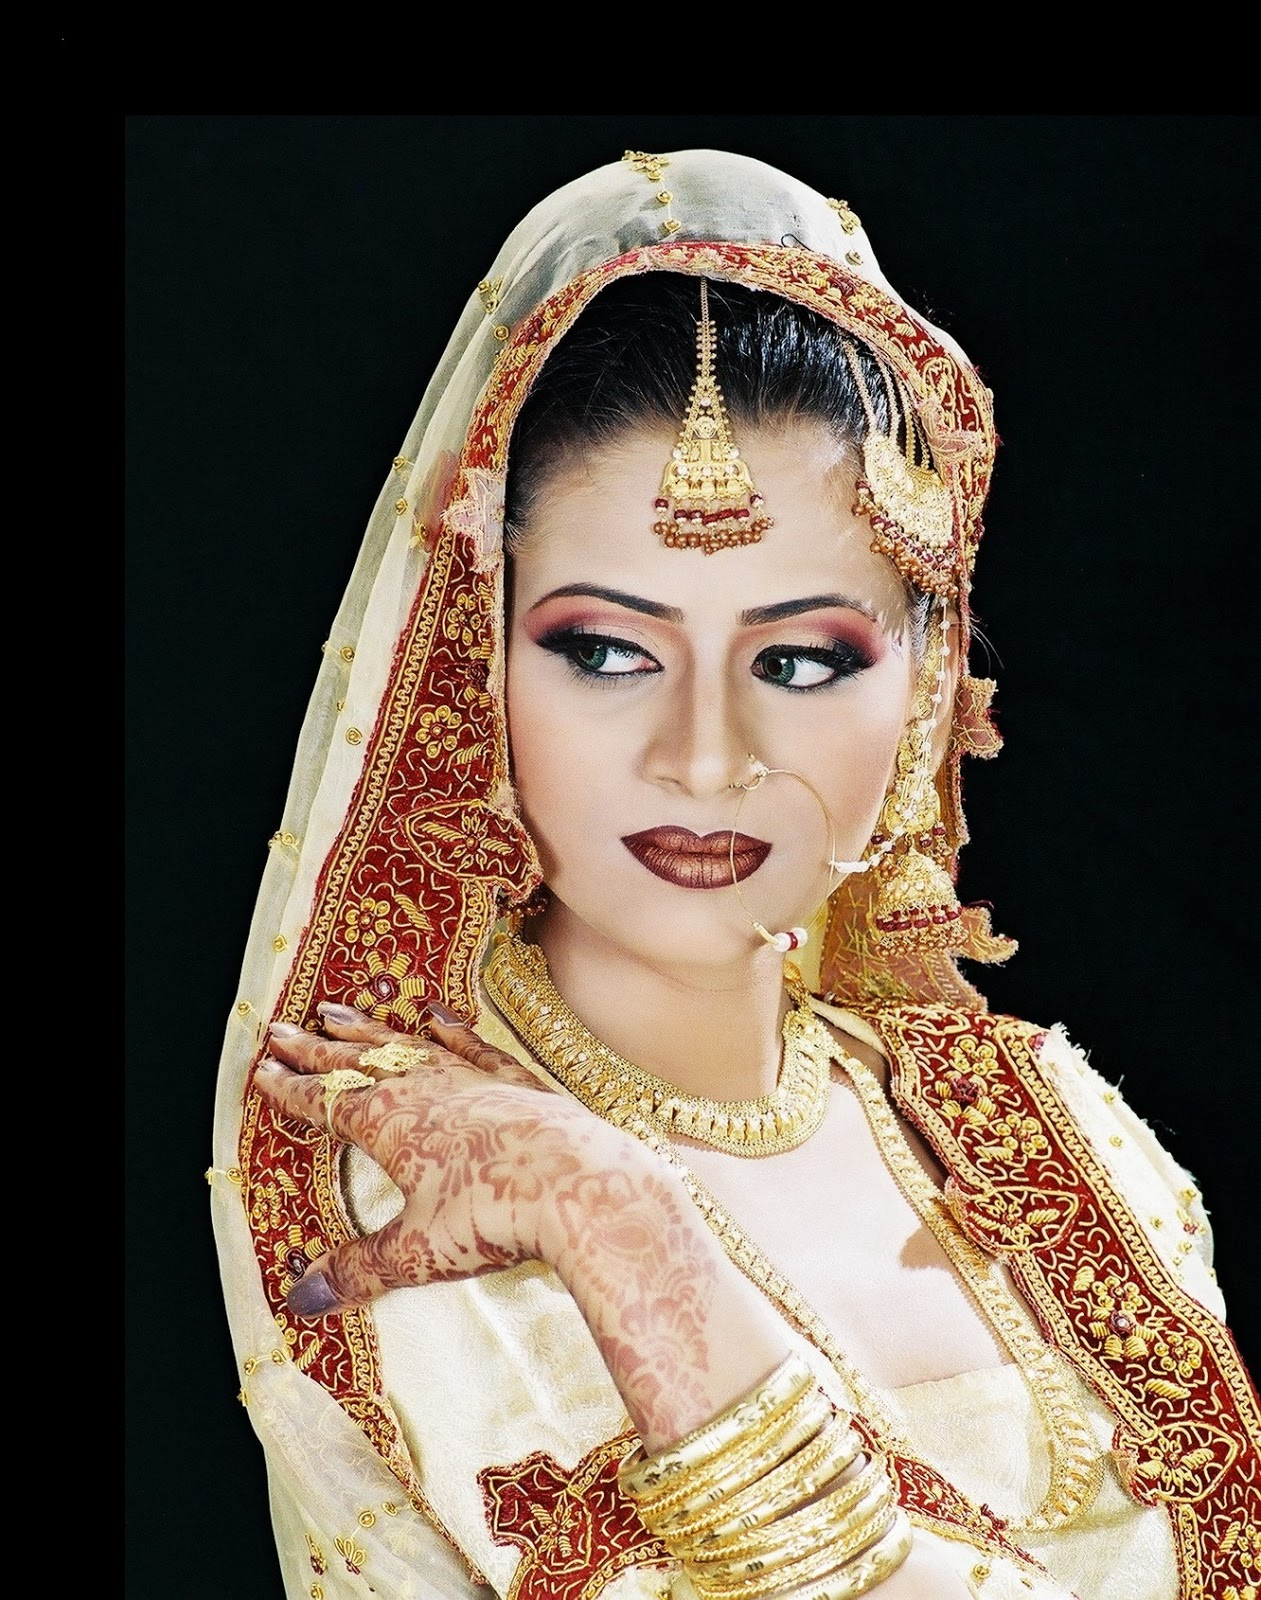 wallpapers of pakistani bridals - photo #24